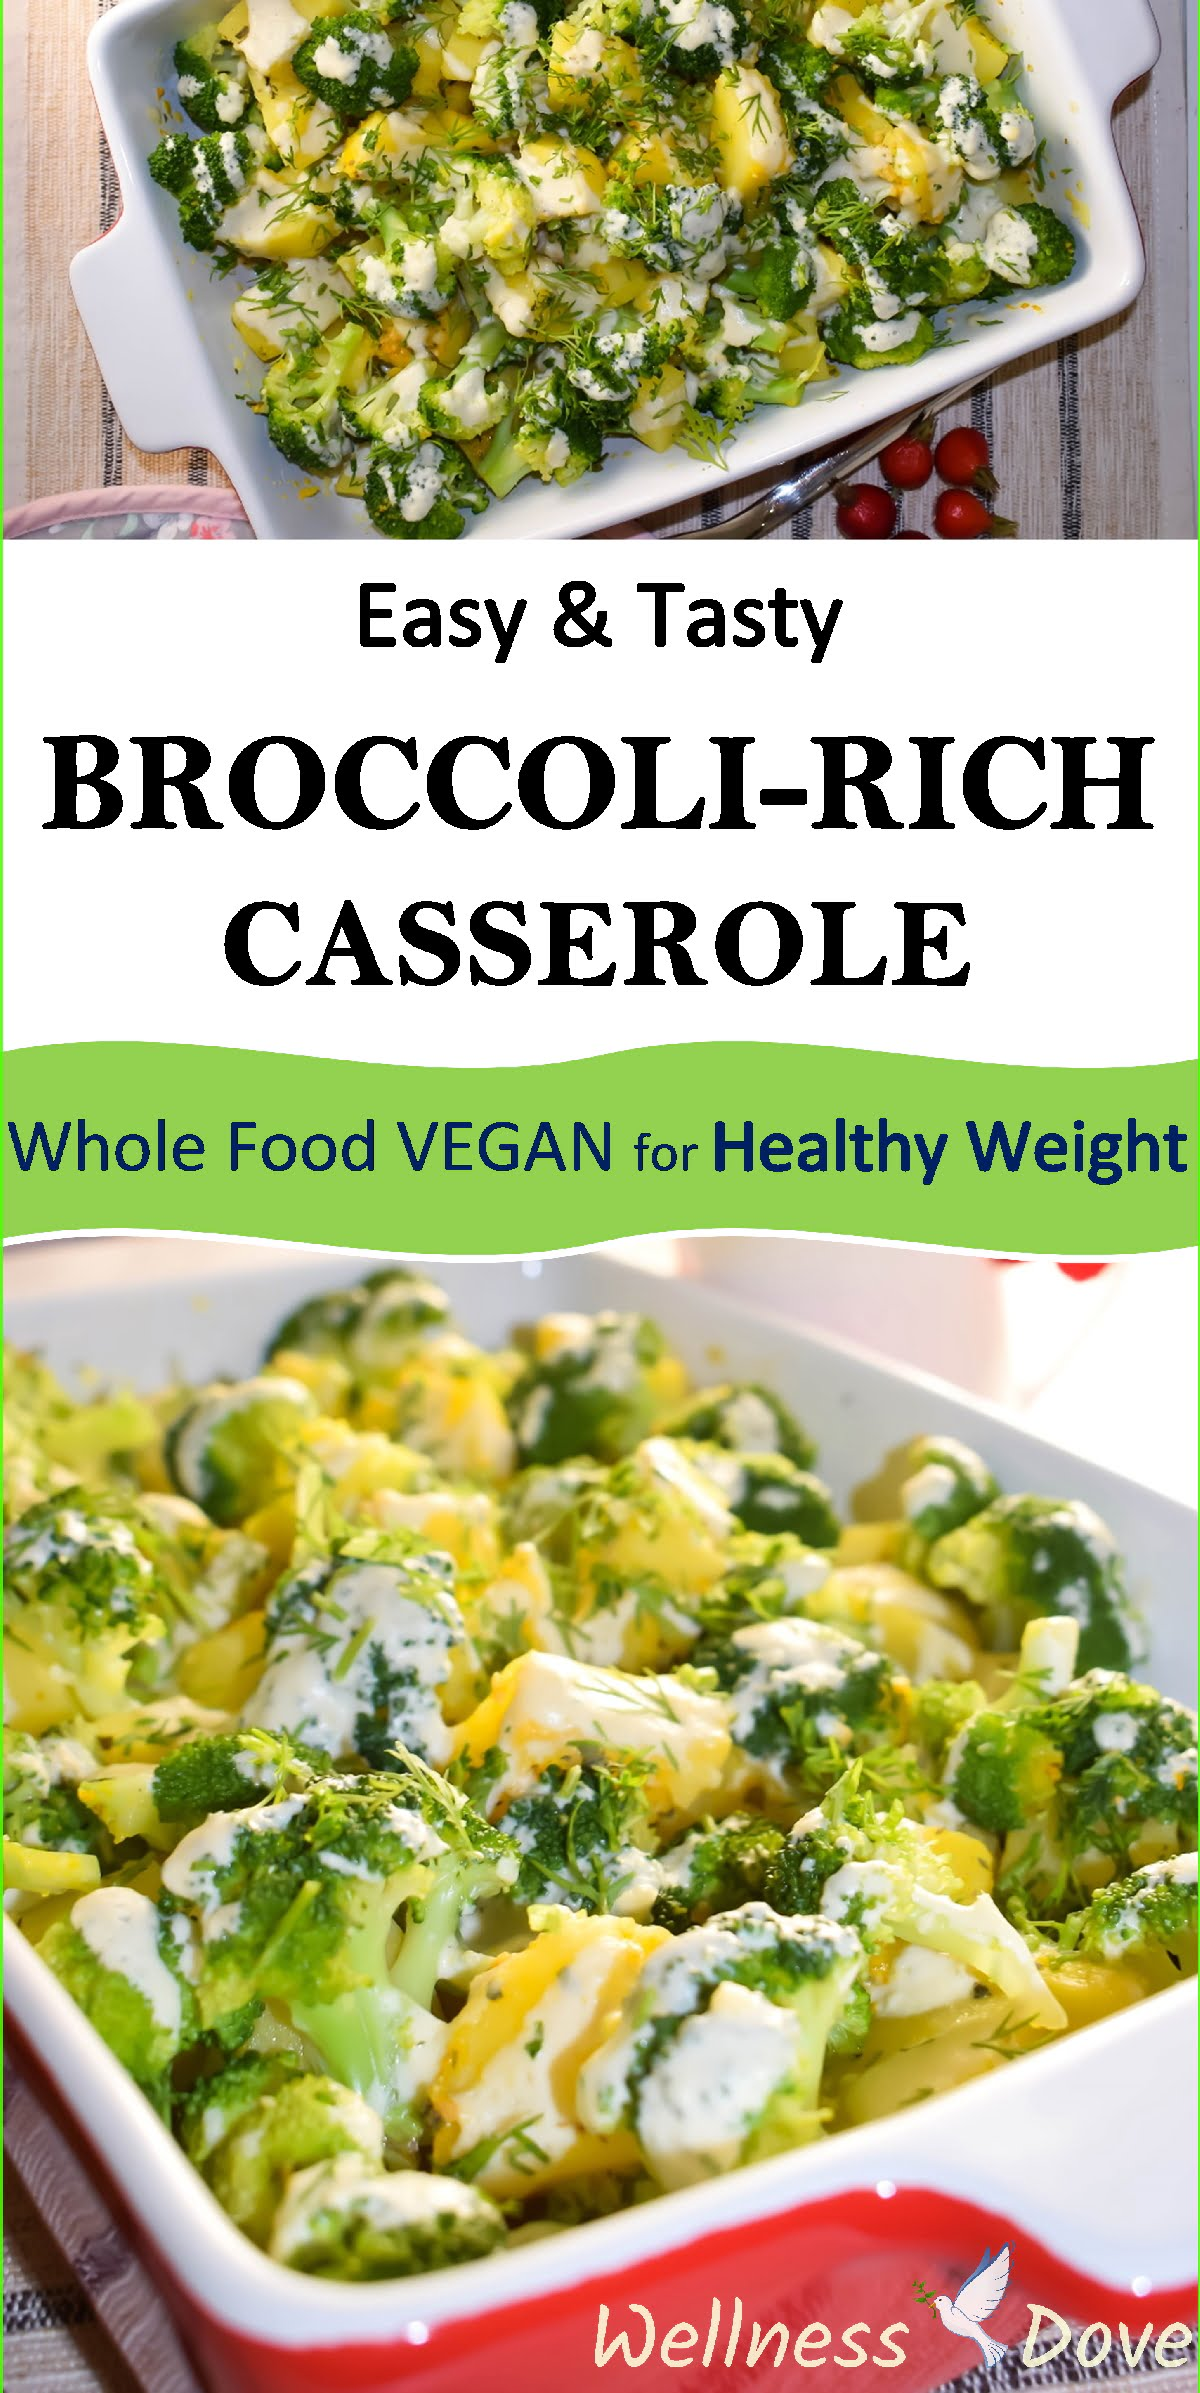 Super delicious and healthy recipe!A healthy whole food plant-based, oil-free meal!Easy and quick to prepare, you will find it very convenient when you don't have enough time to cook.